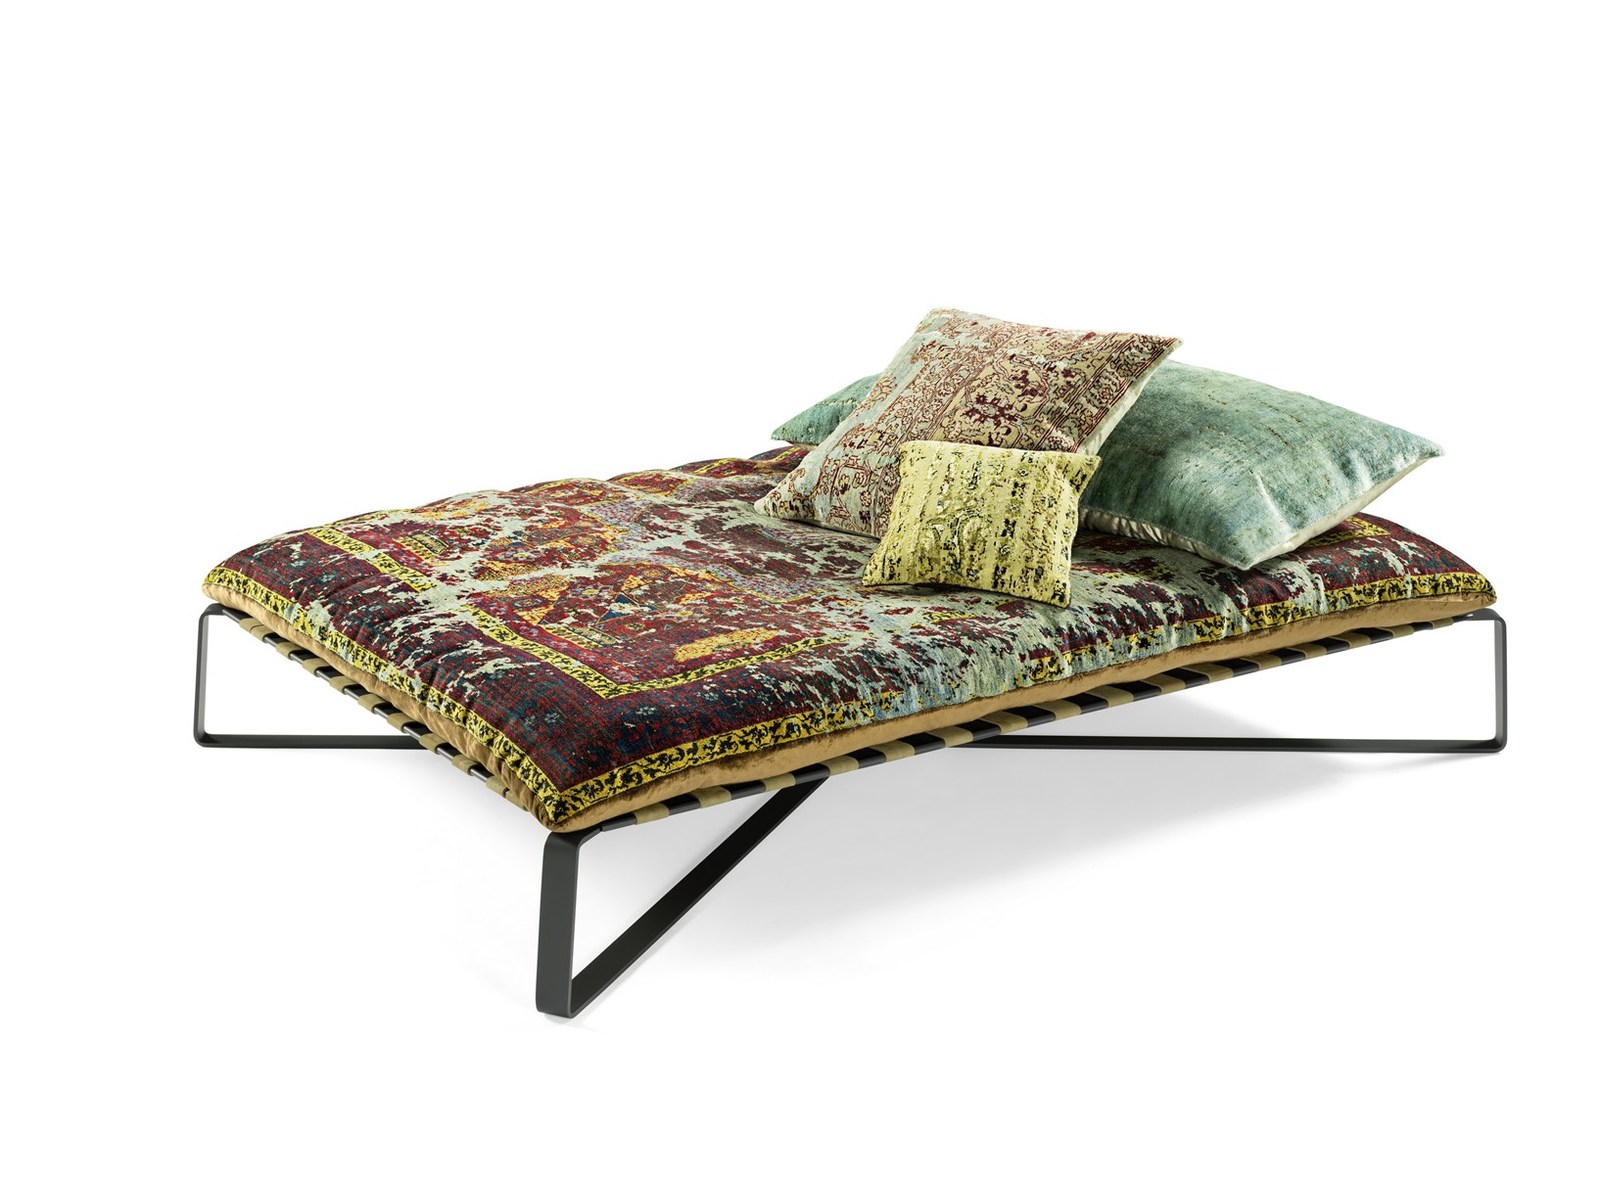 Unique View in gallery divan daybed oriental style daydreamer jan kath thumb xauto Divan Daybed in Oriental Style